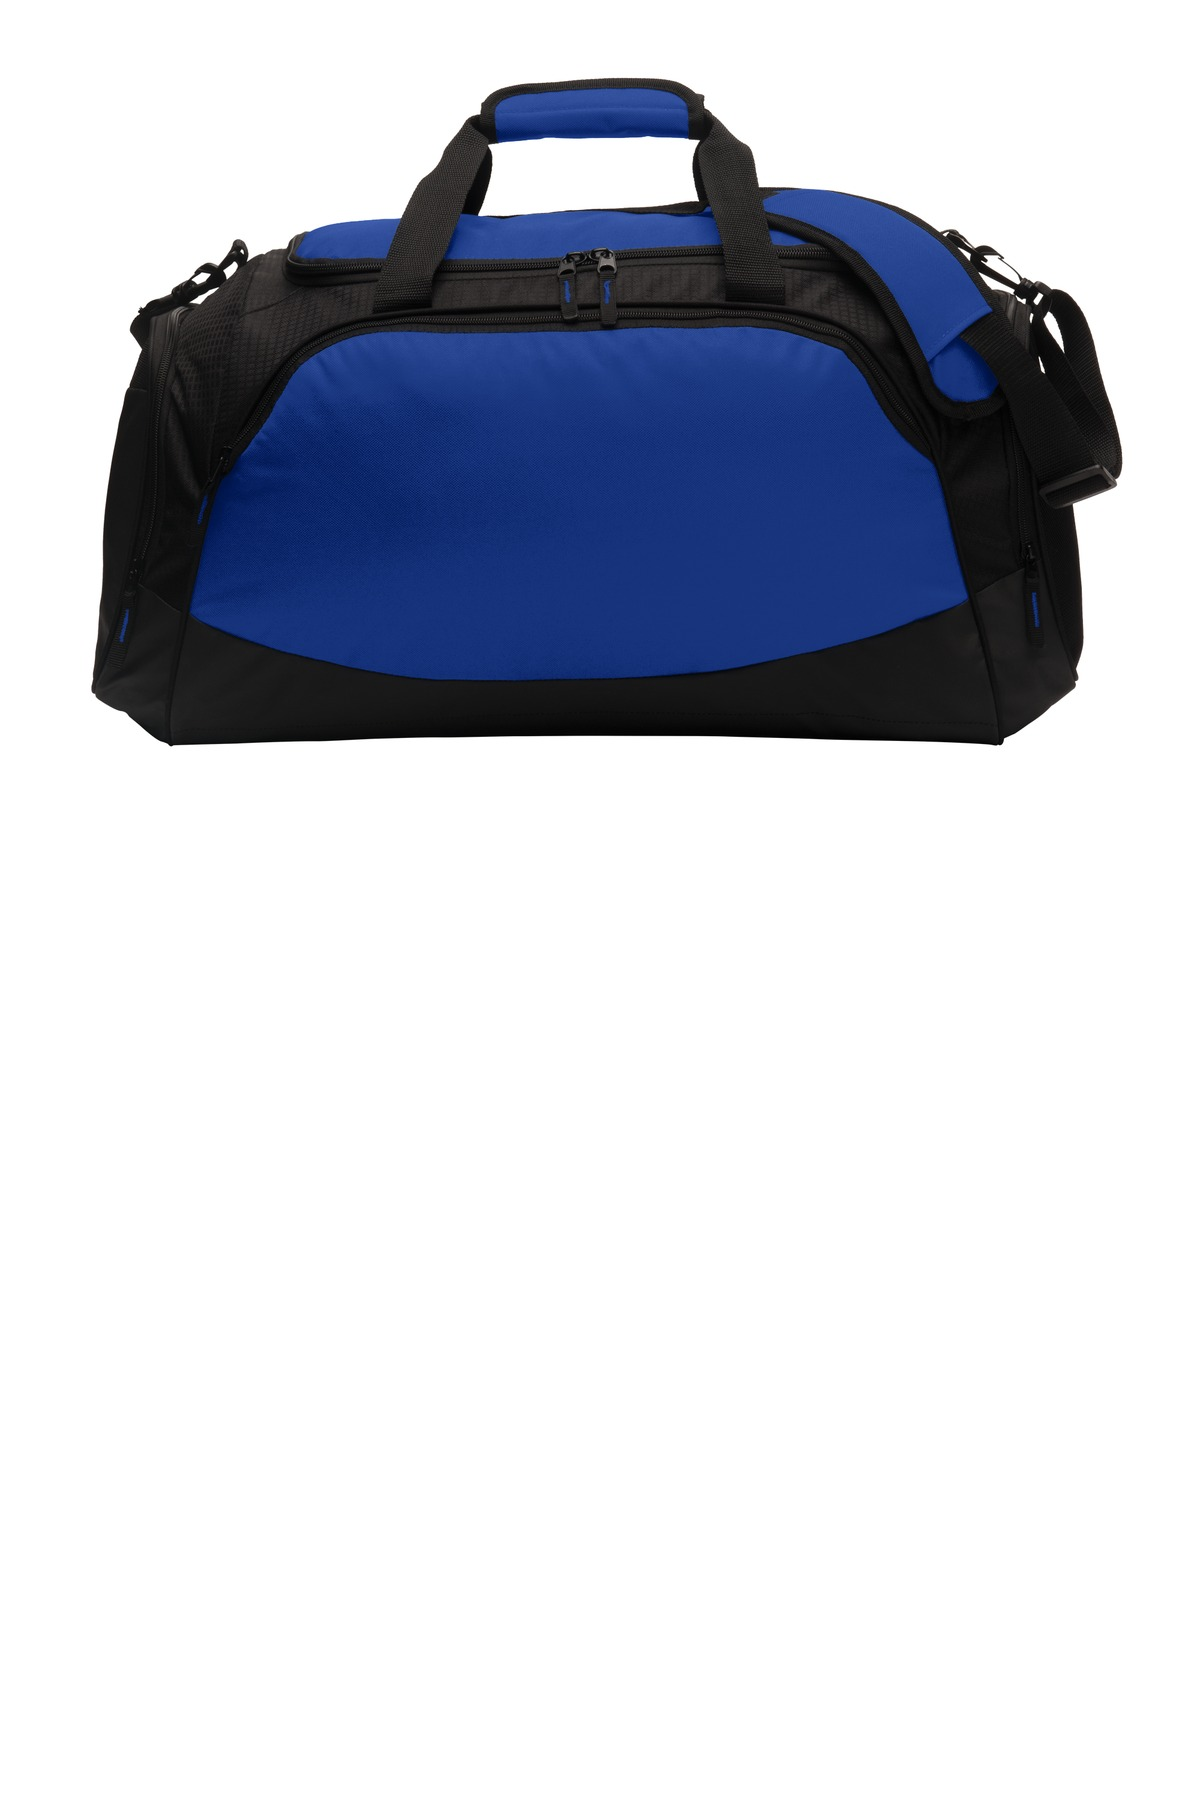 Port Authority Medium Active Duffel. BG801